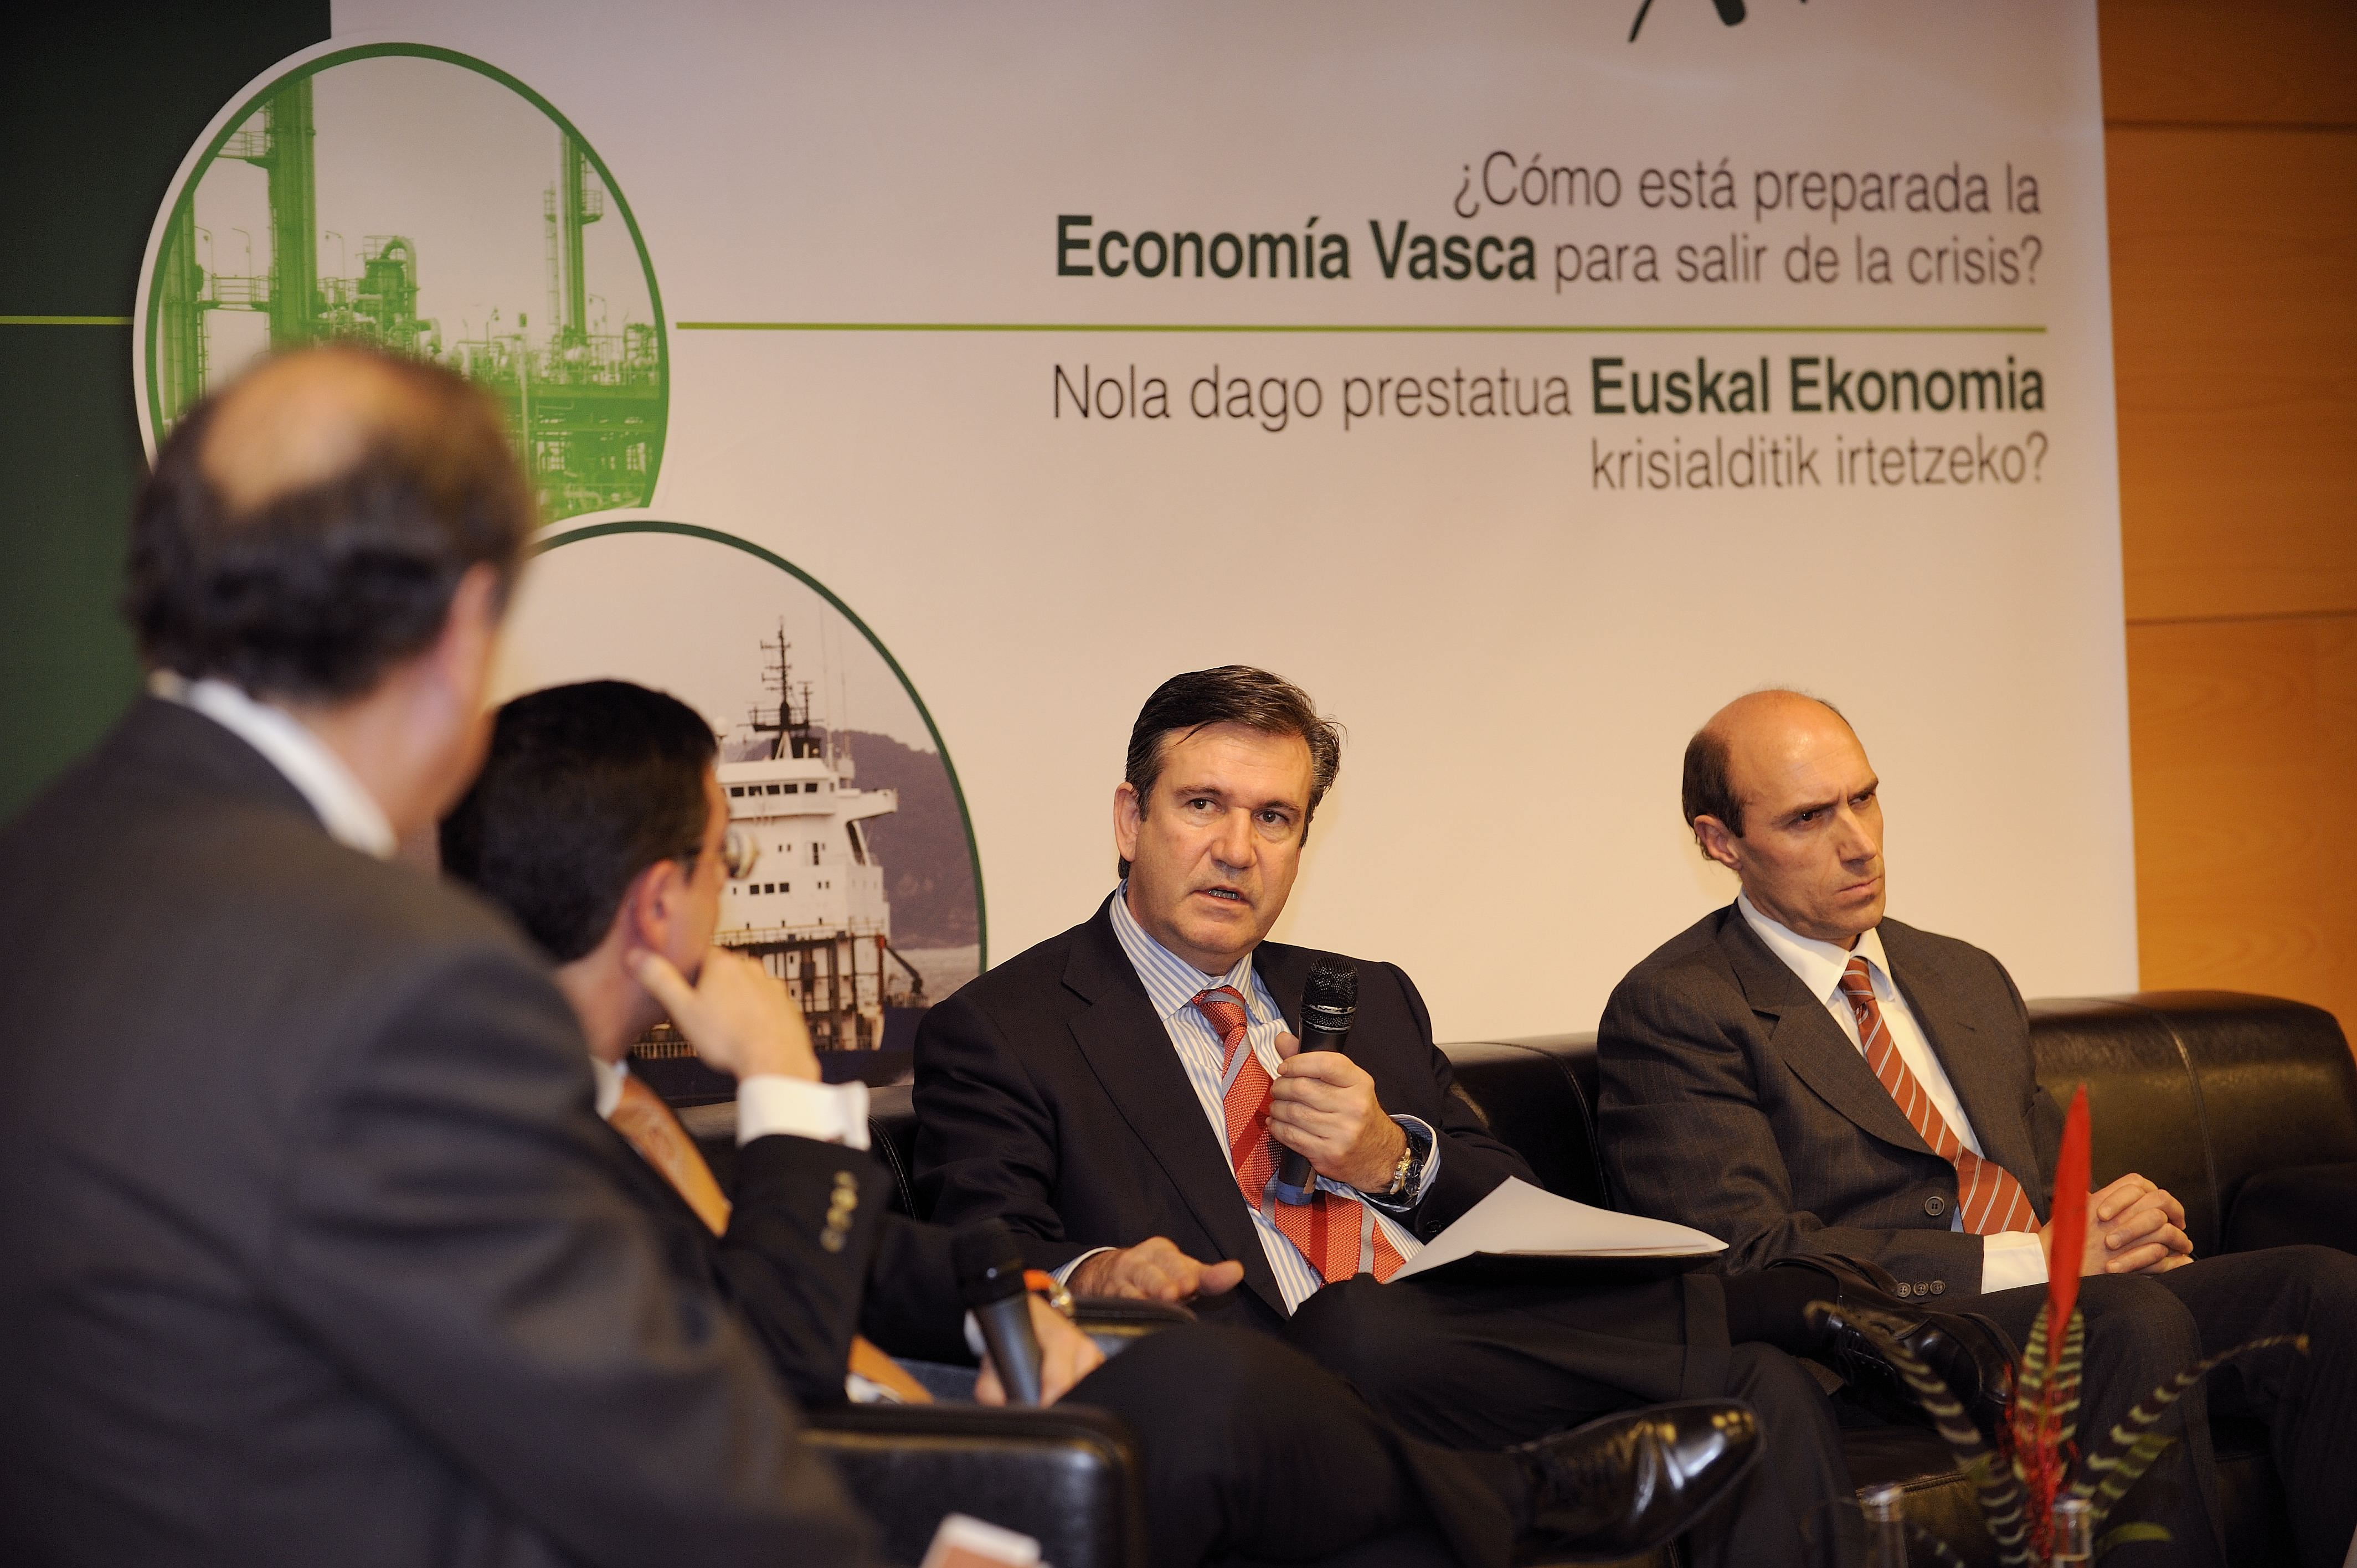 The Minister of Industry takes part in a roundtable on the economic crisis in the Basque Country